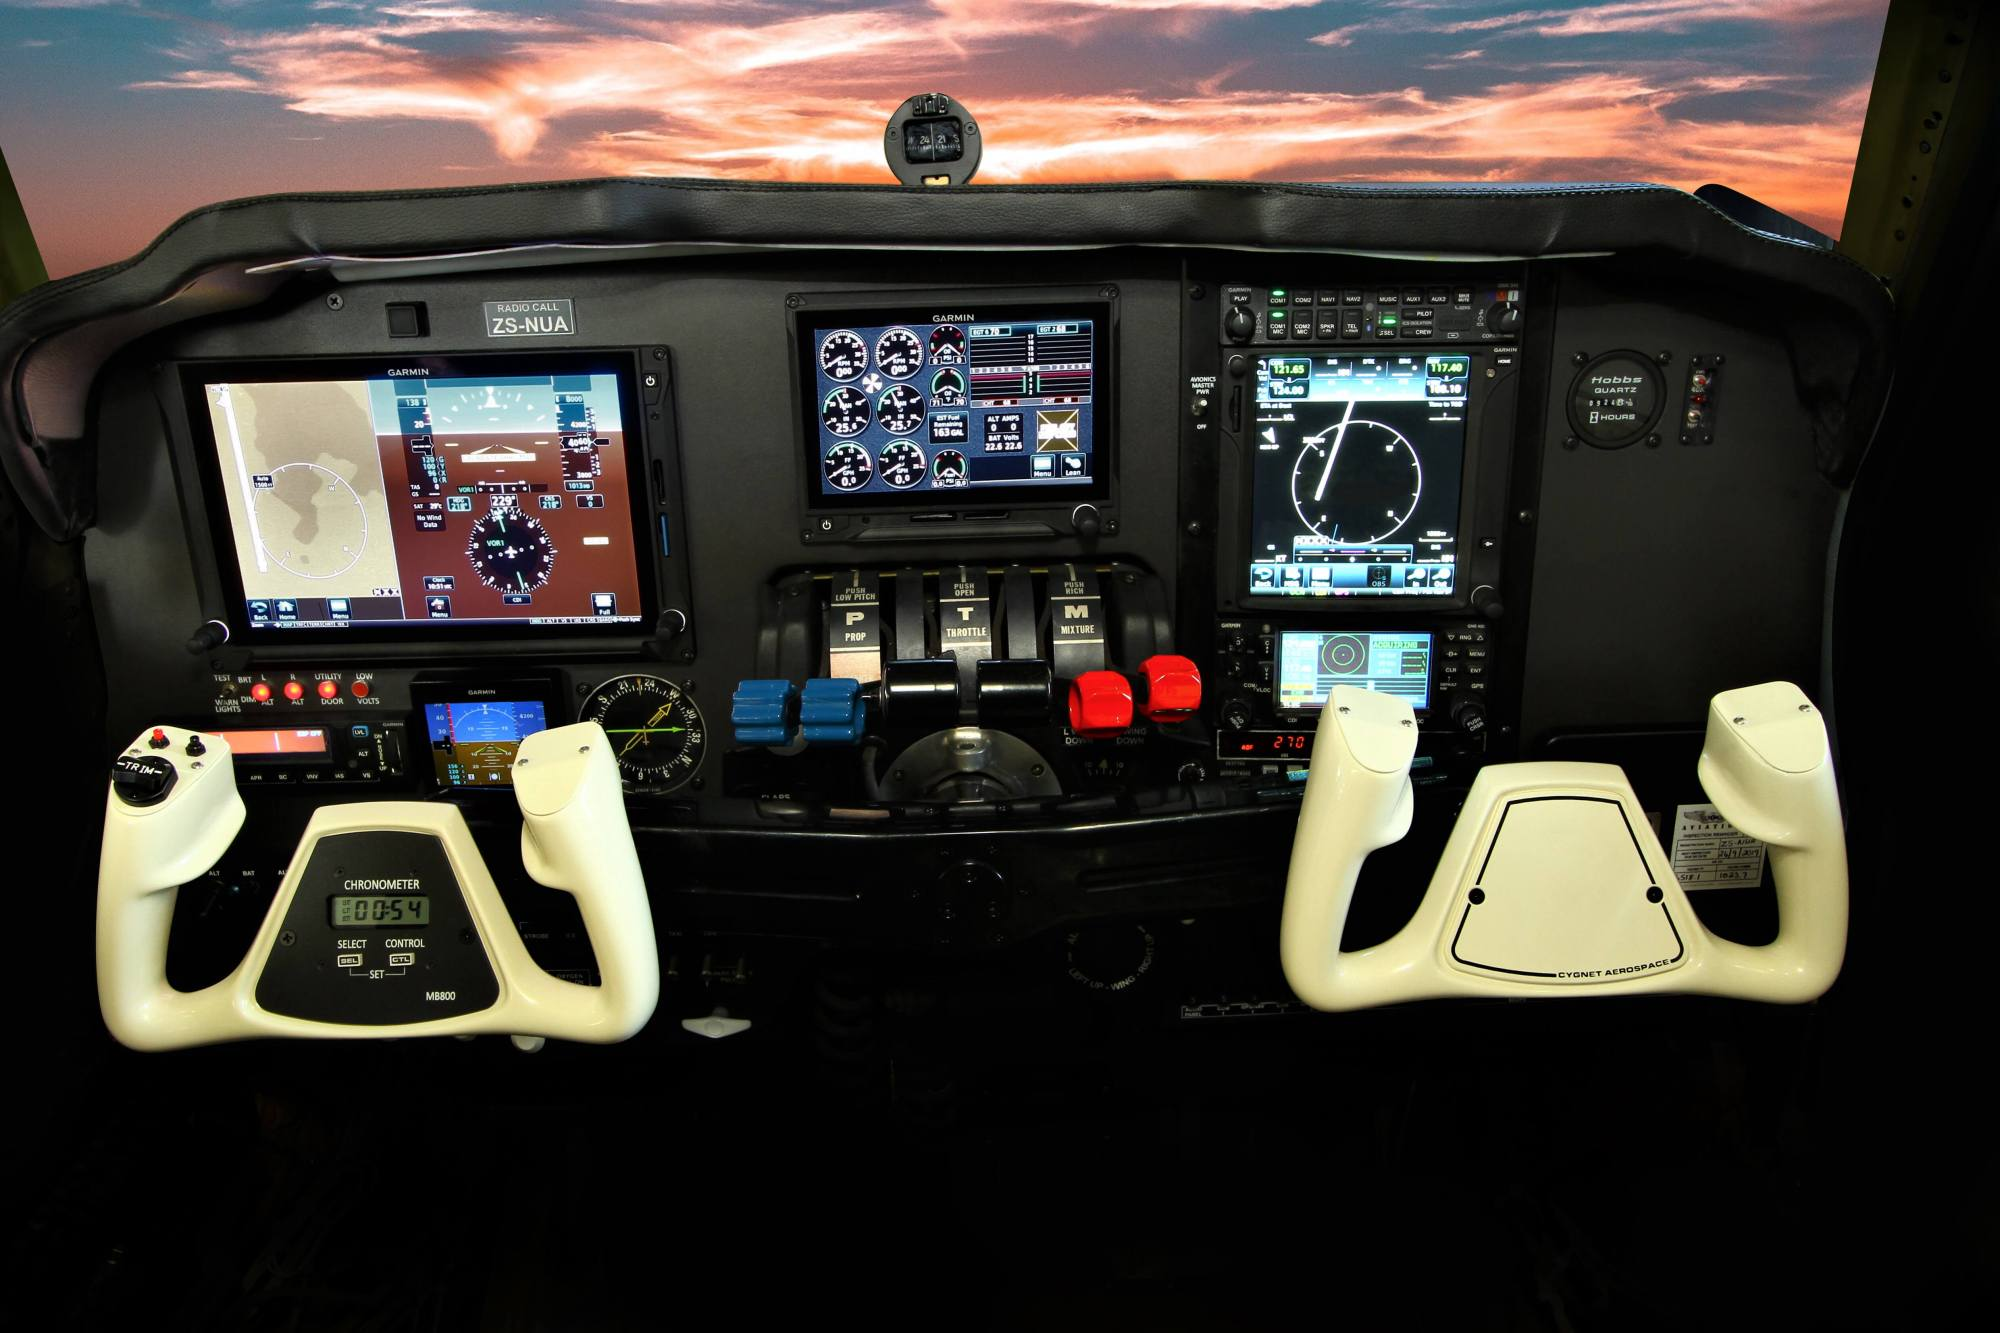 hight resolution of install garmin g500txi with engine indication gtn750 gns430w gma345 audio panel gfc600